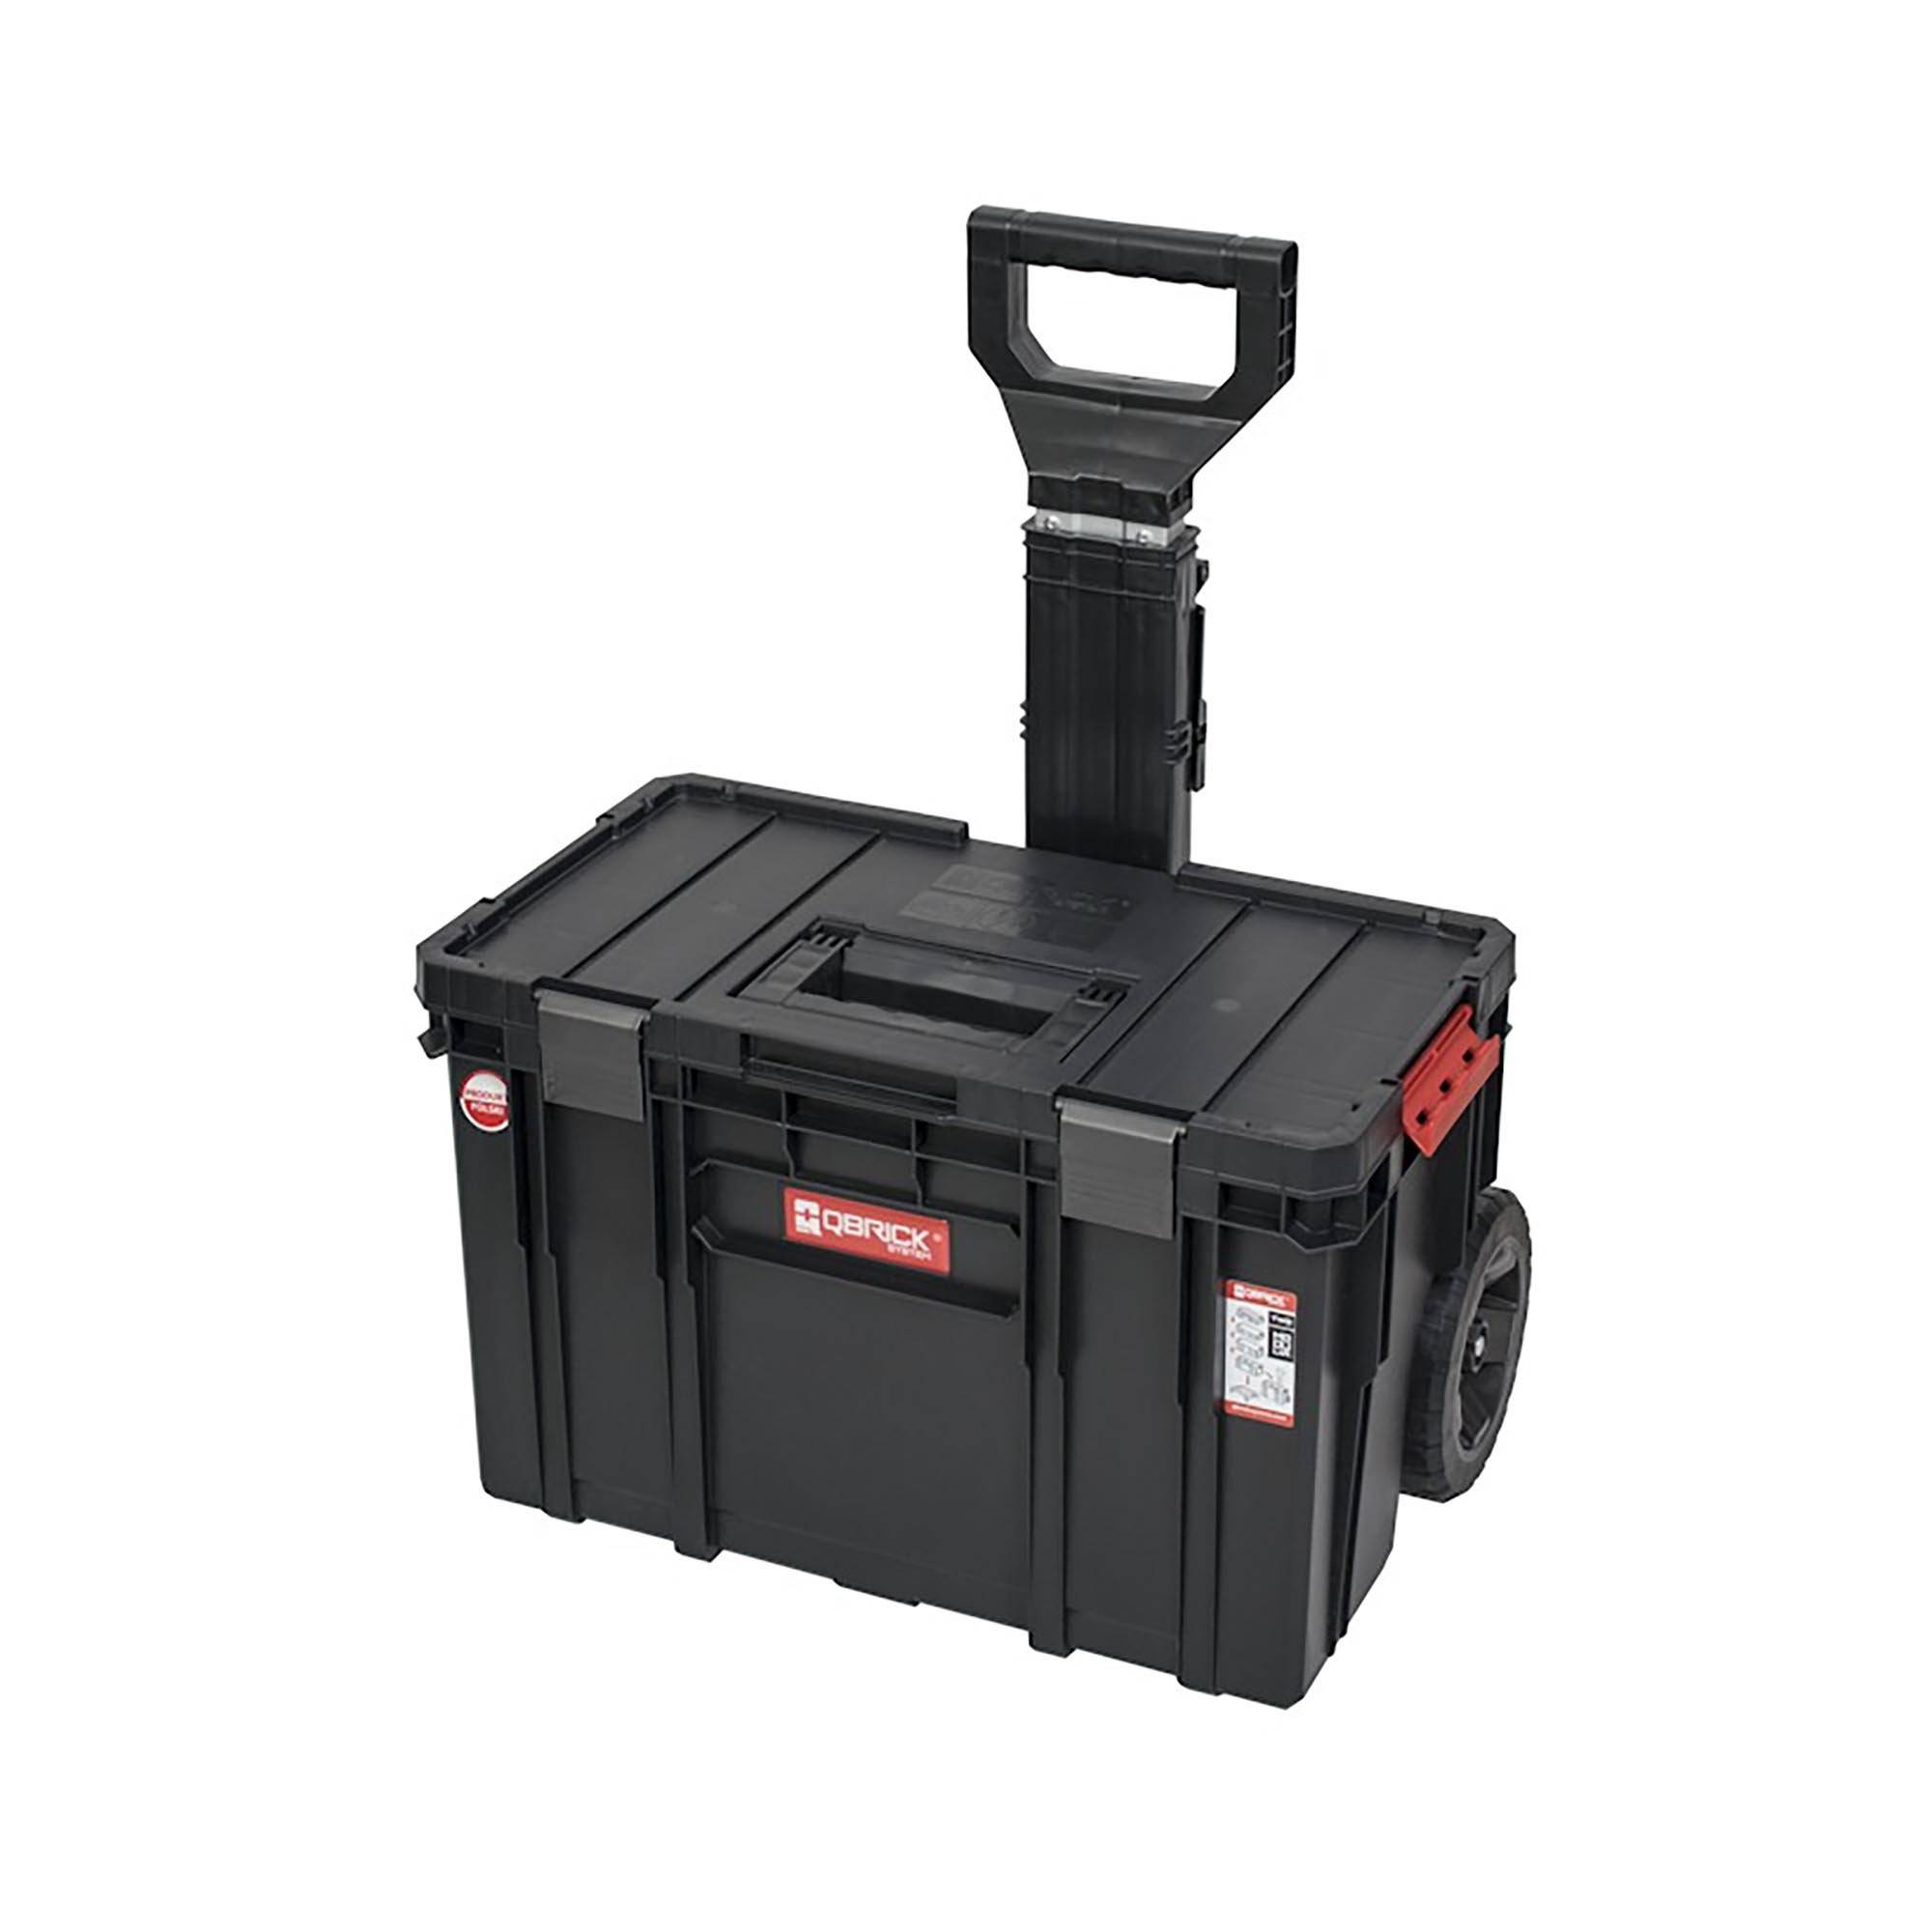 Qbrick System Tool Trolley System TWO - 38 x 53 x 69 cm SKRWQCTWOPACZAPG103